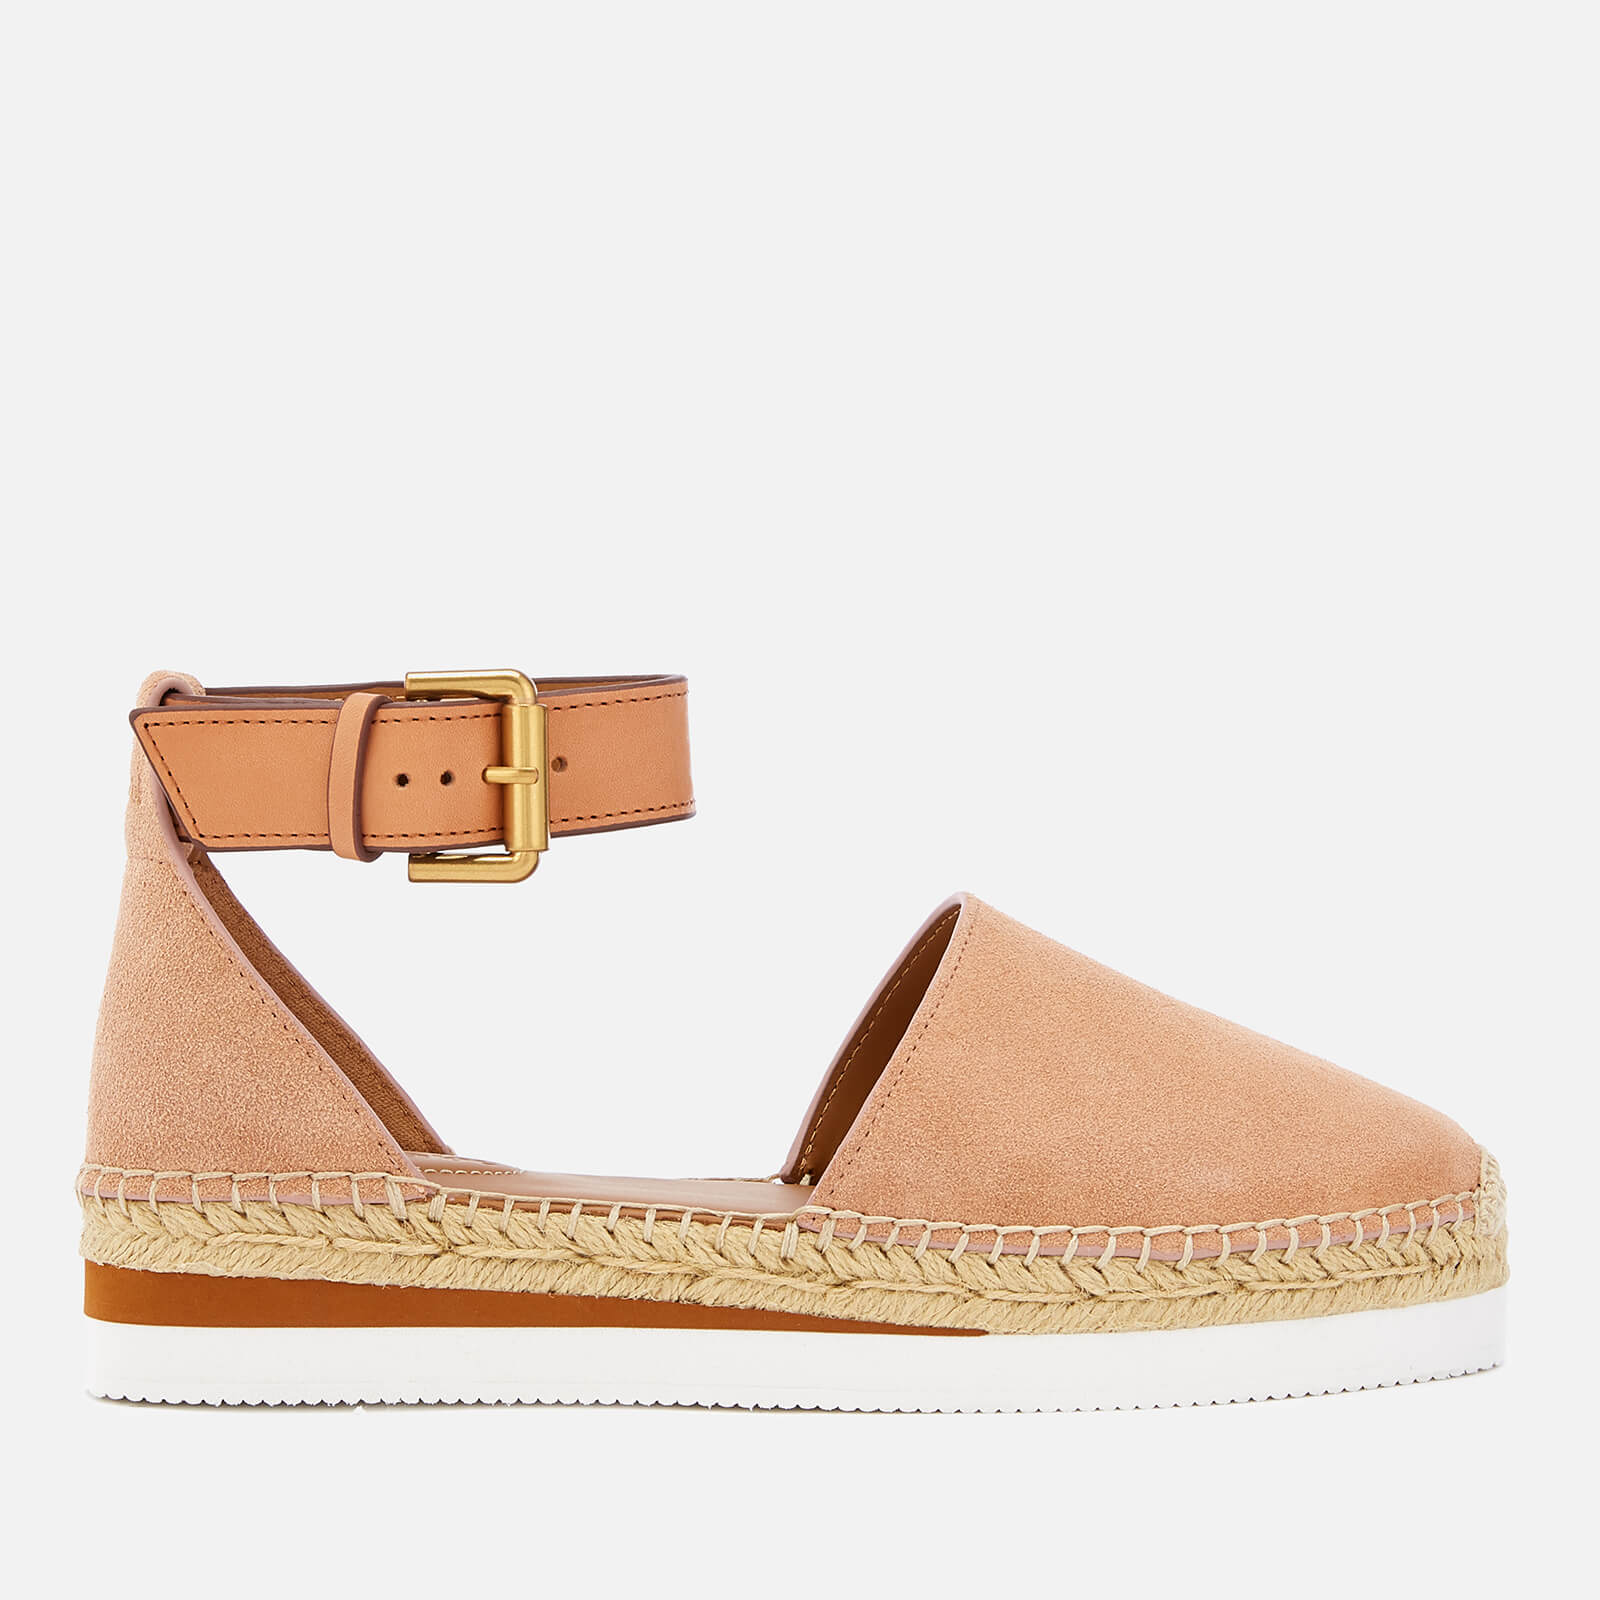 6017058889a See By Chloé Women s Glyn Suede Espadrille Flat Sandals - Cipria ...